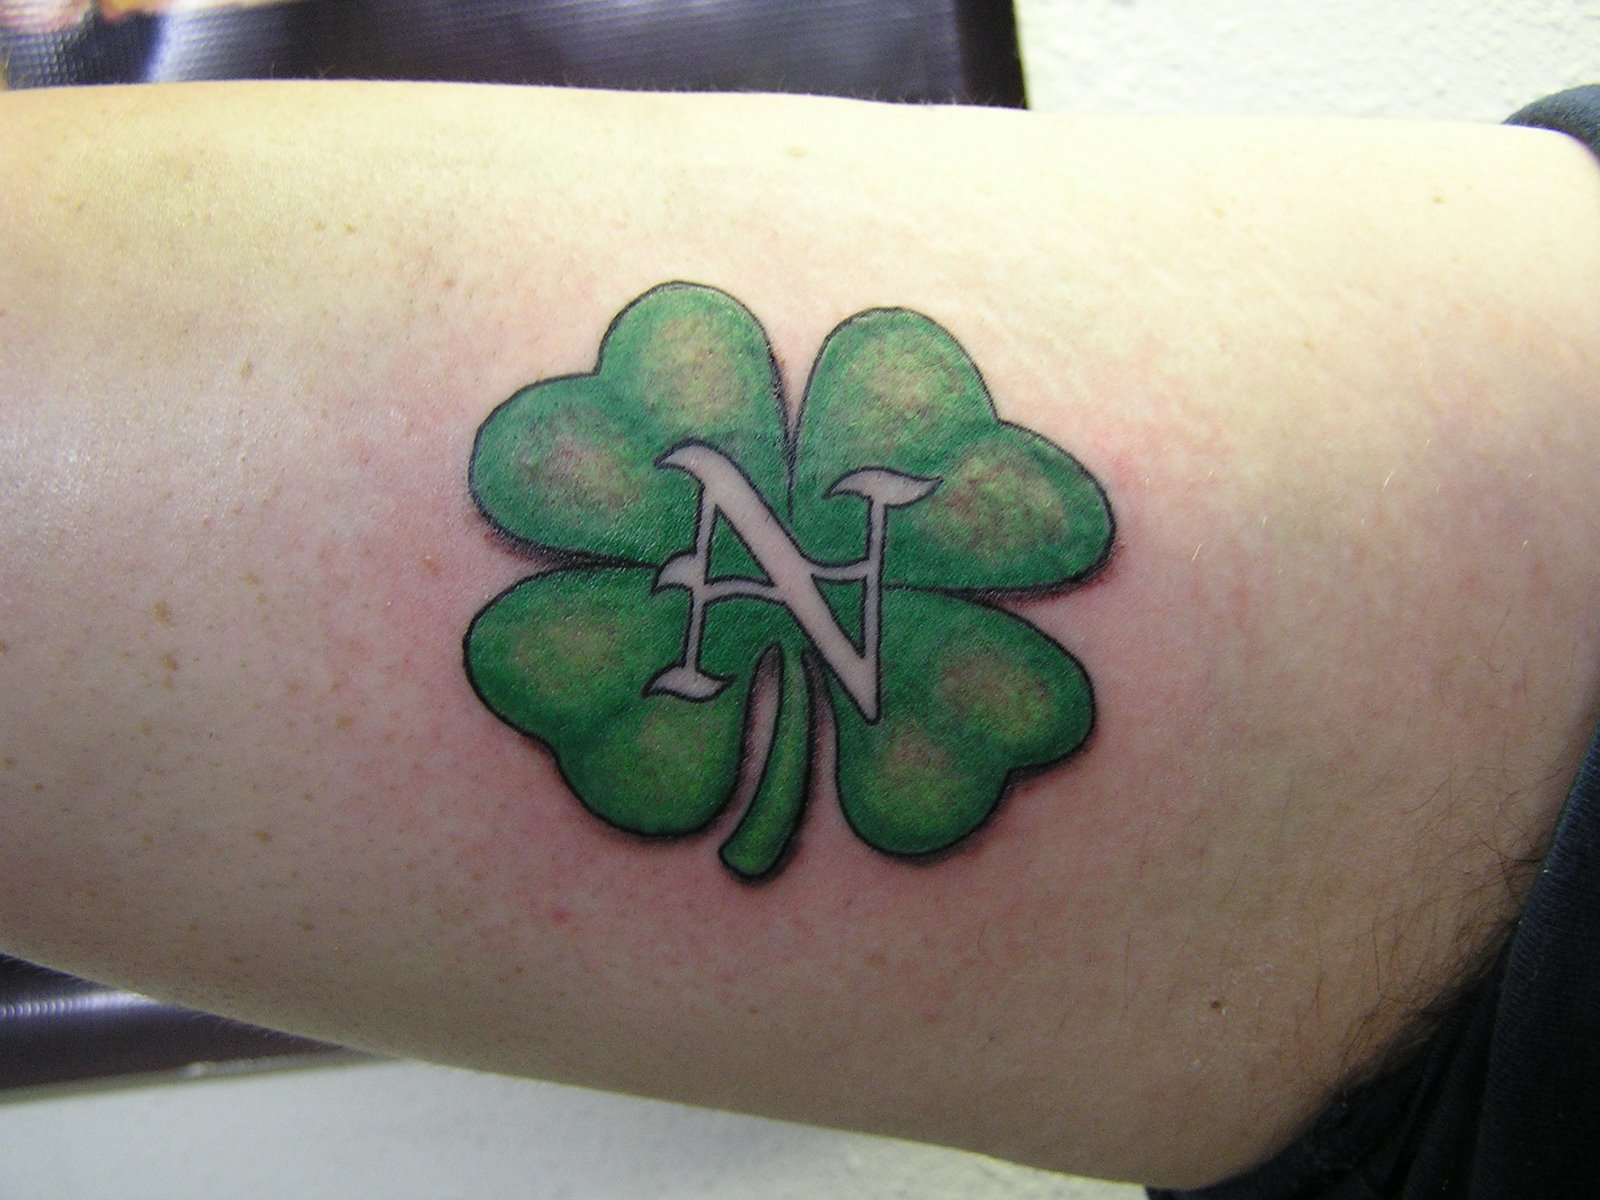 Tattoo Designs: Shamrock Tattoos Designs, Ideas And Meaning